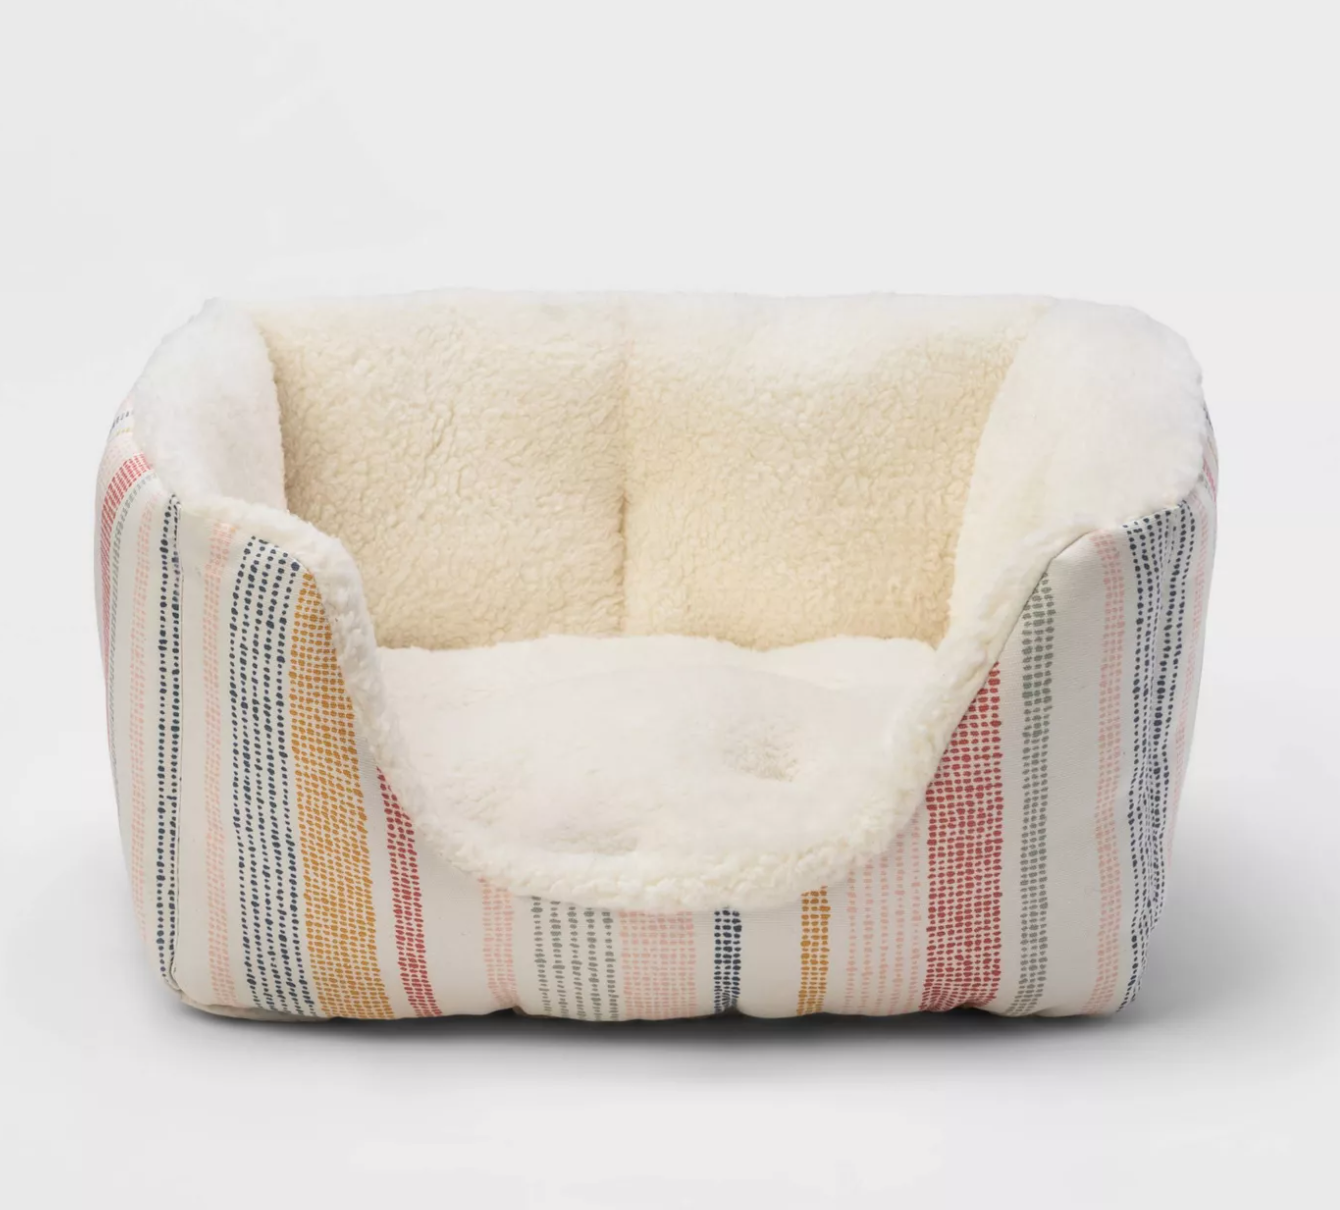 a high walled pet bed with a plush inside and striped design on the outside